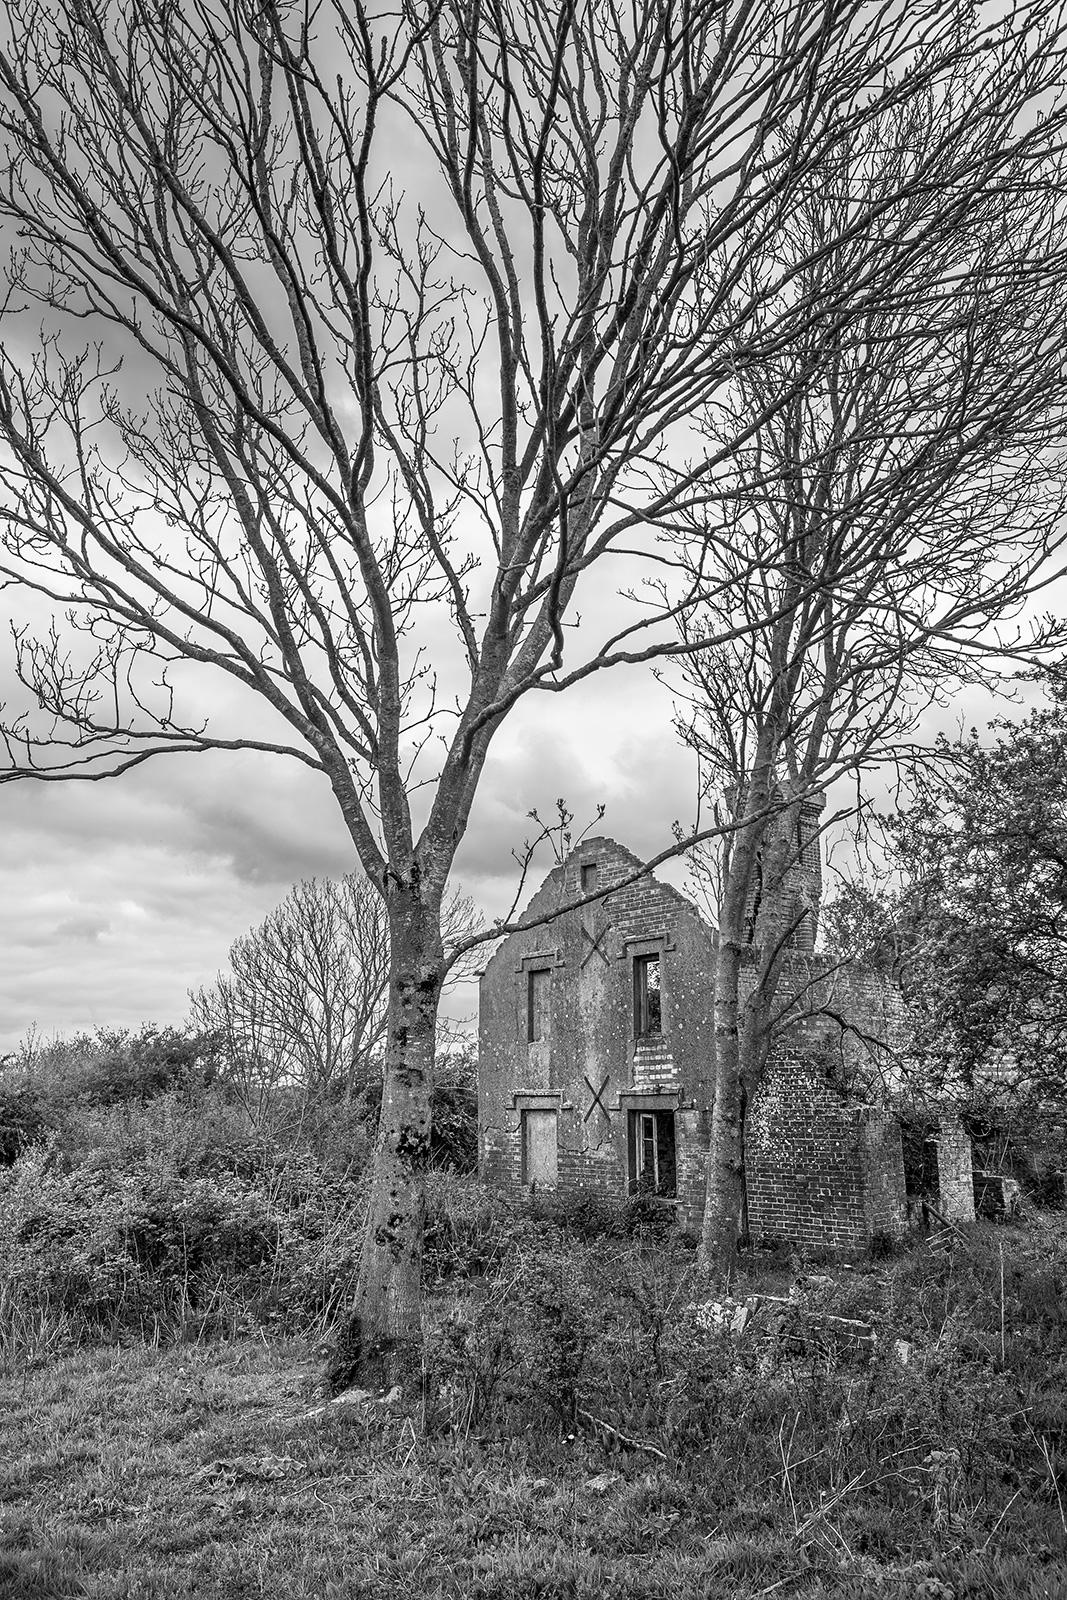 Ruined abandoned house by trees, black and white portrait rural landscape Hemsley's Rough, Halland, East Sussex UK ©P. Maton 2019 eyeteeth.net